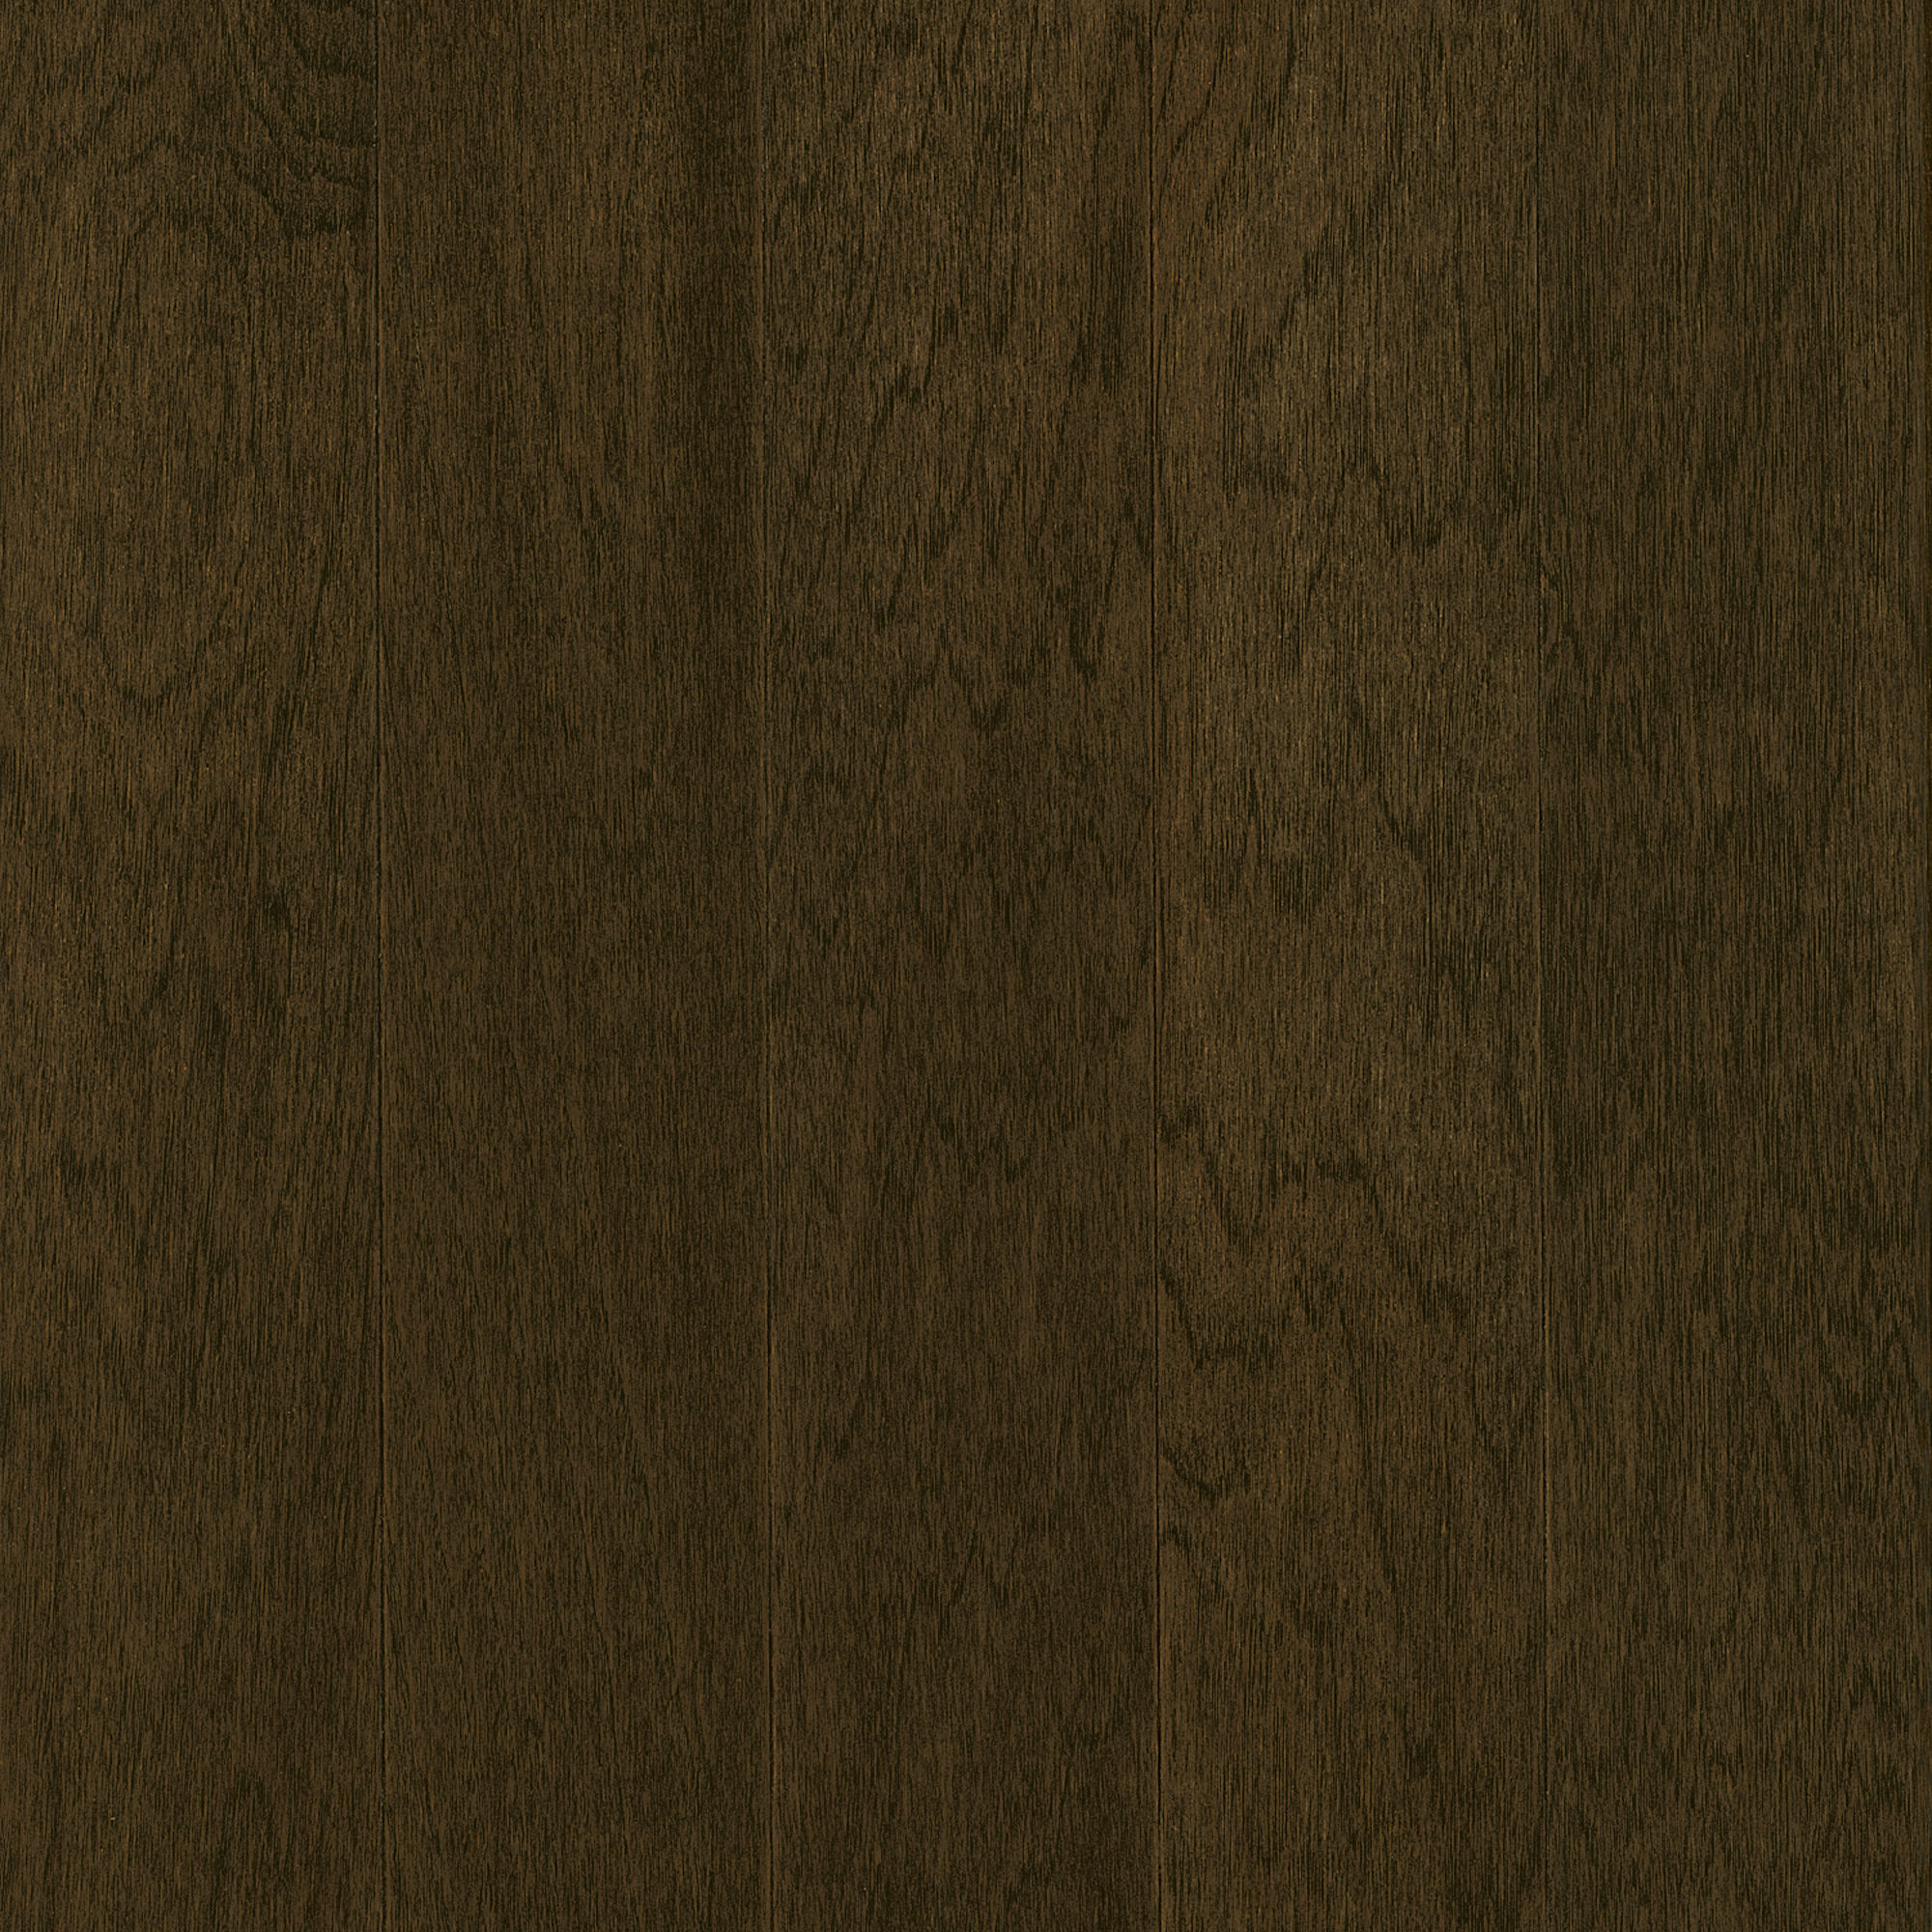 Armstrong Blackened Brown Hickory Shop Hardwood